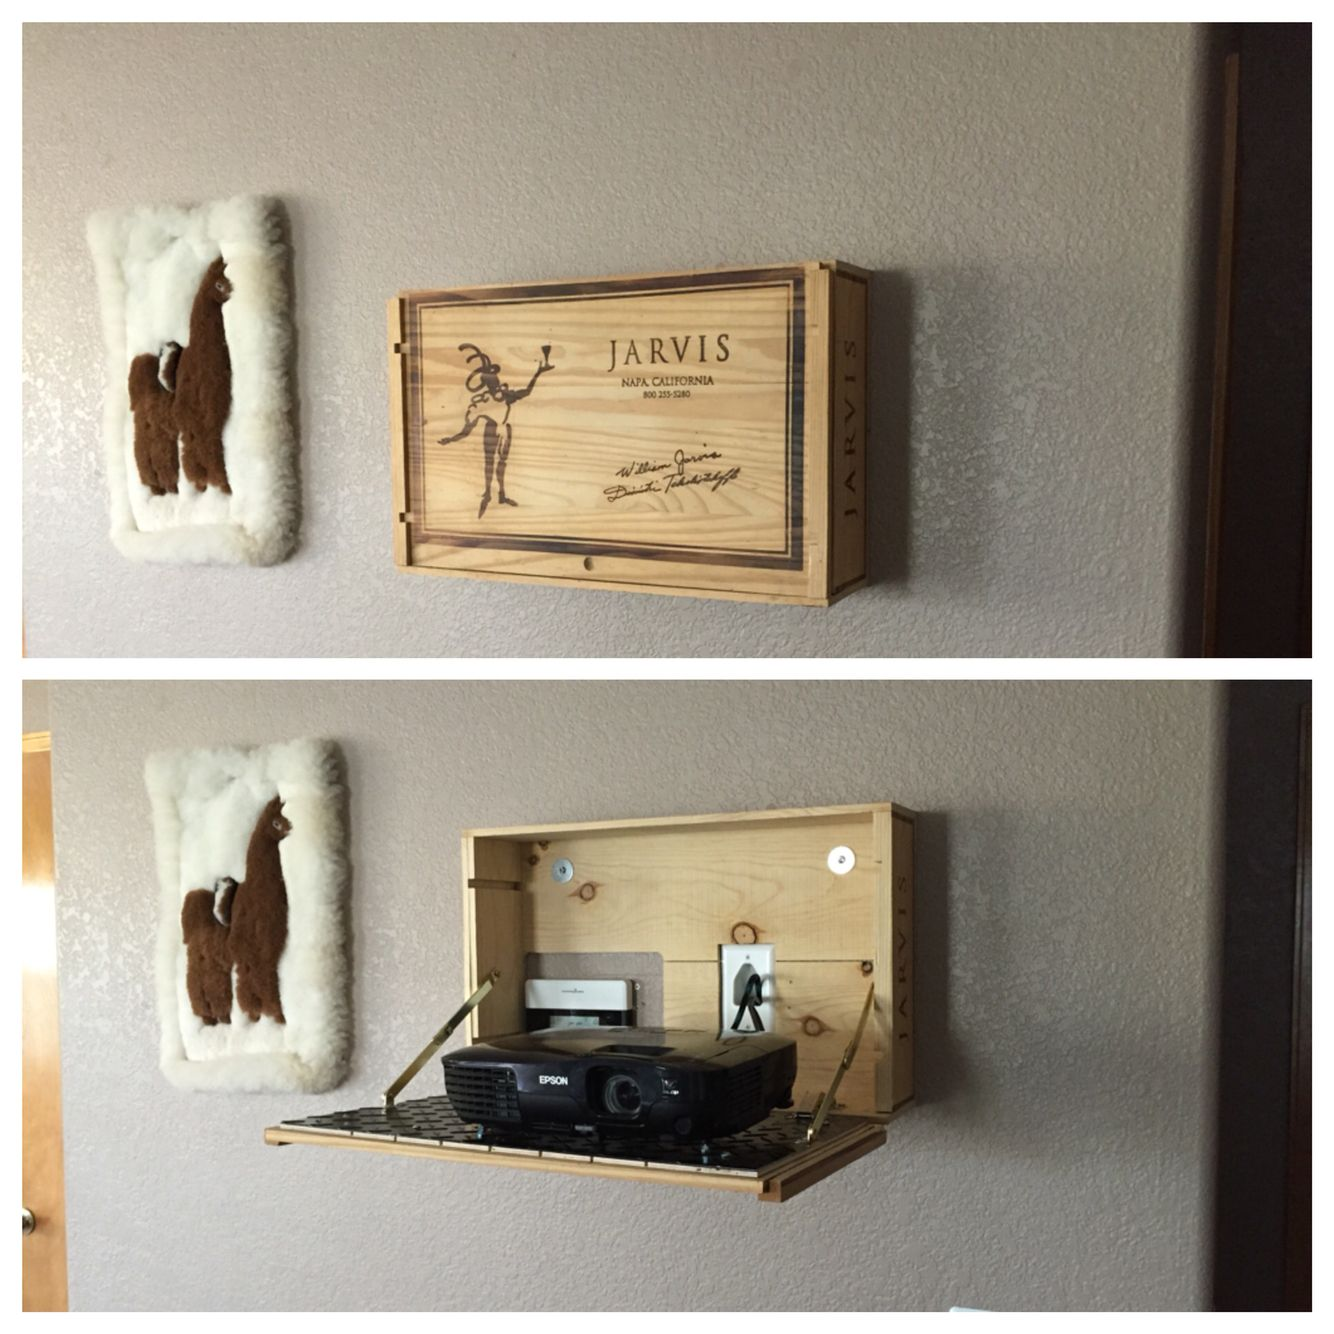 Theater Room With Hidden Projector: I Took An Old Wine Bottle Case And Converted It Into A